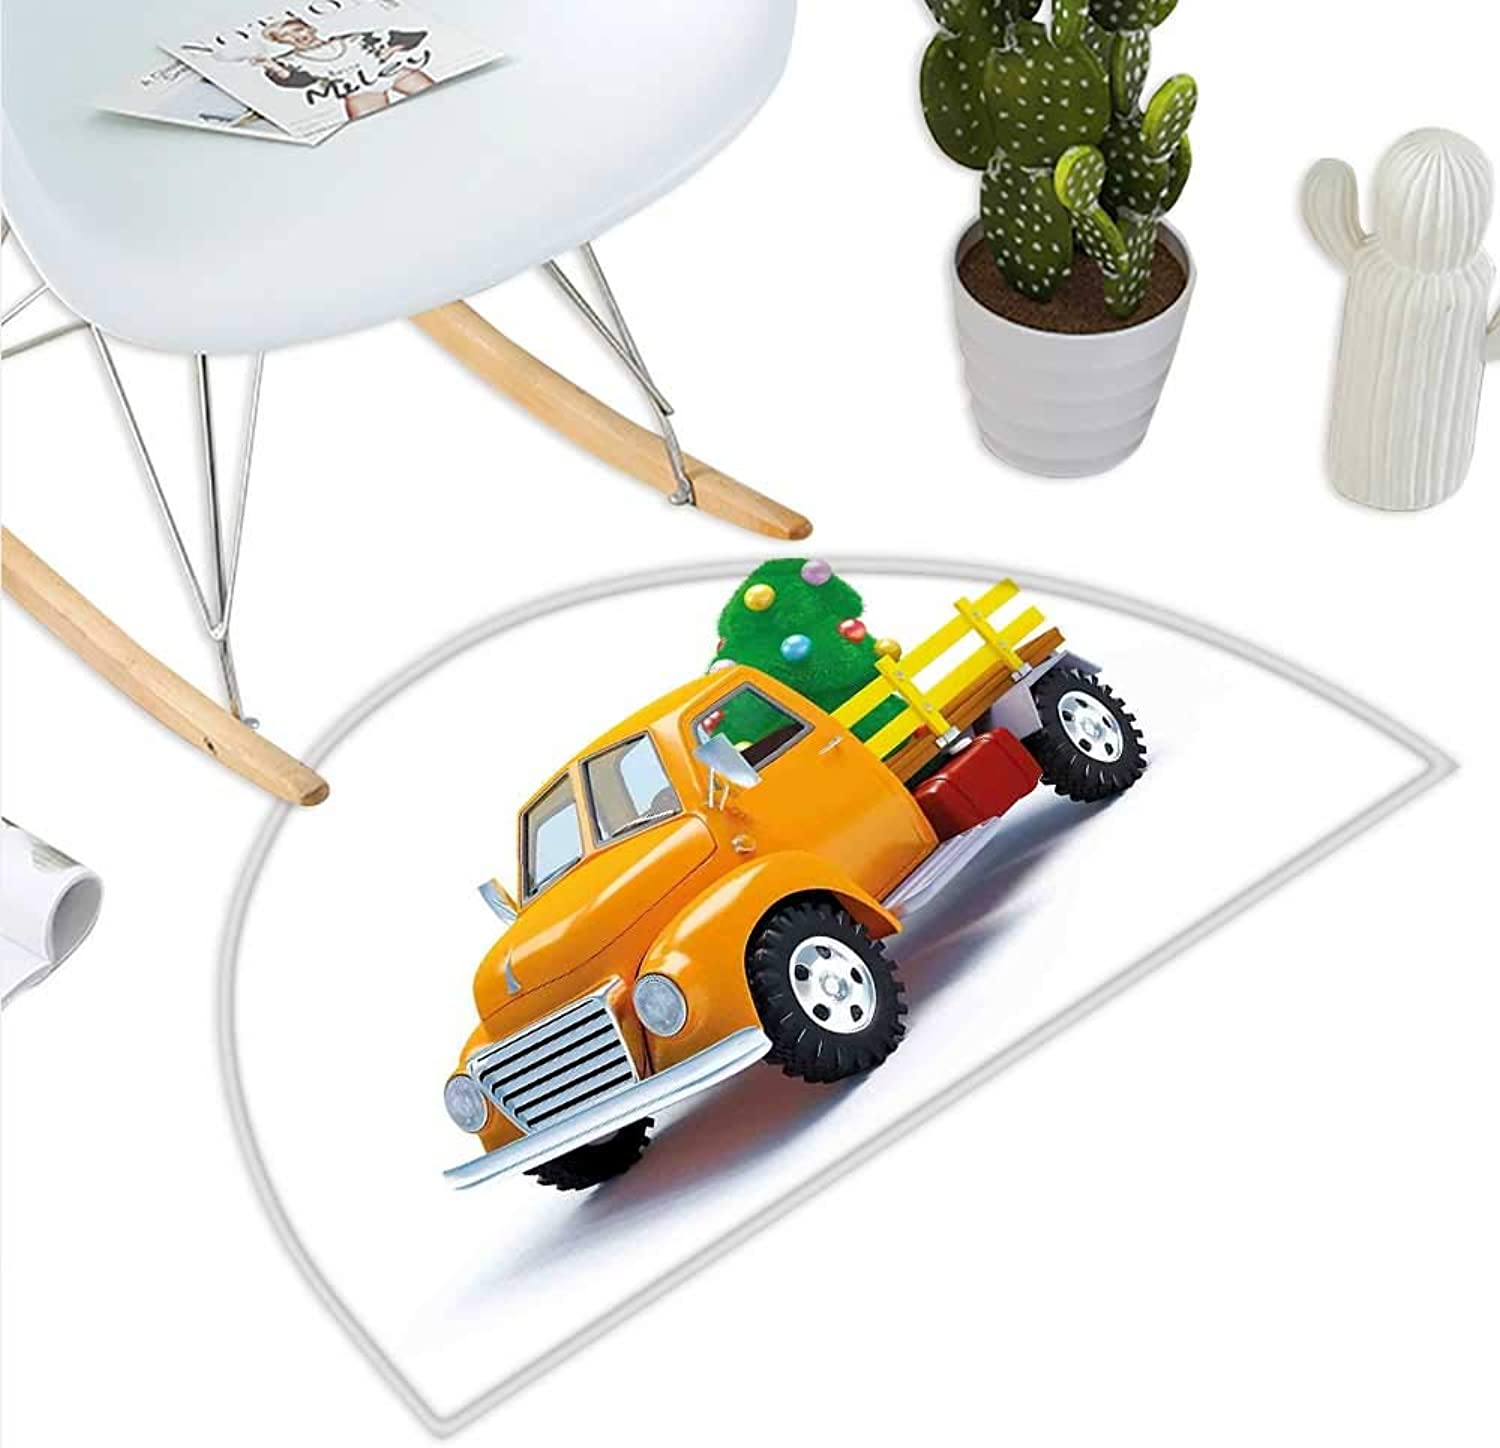 Christmas Semicircle Doormat Yellow Vintage Truck and Tree Design with Star Topper Old Farm Vehicle Halfmoon doormats H 35.4  xD 53.1  White Yellow Green